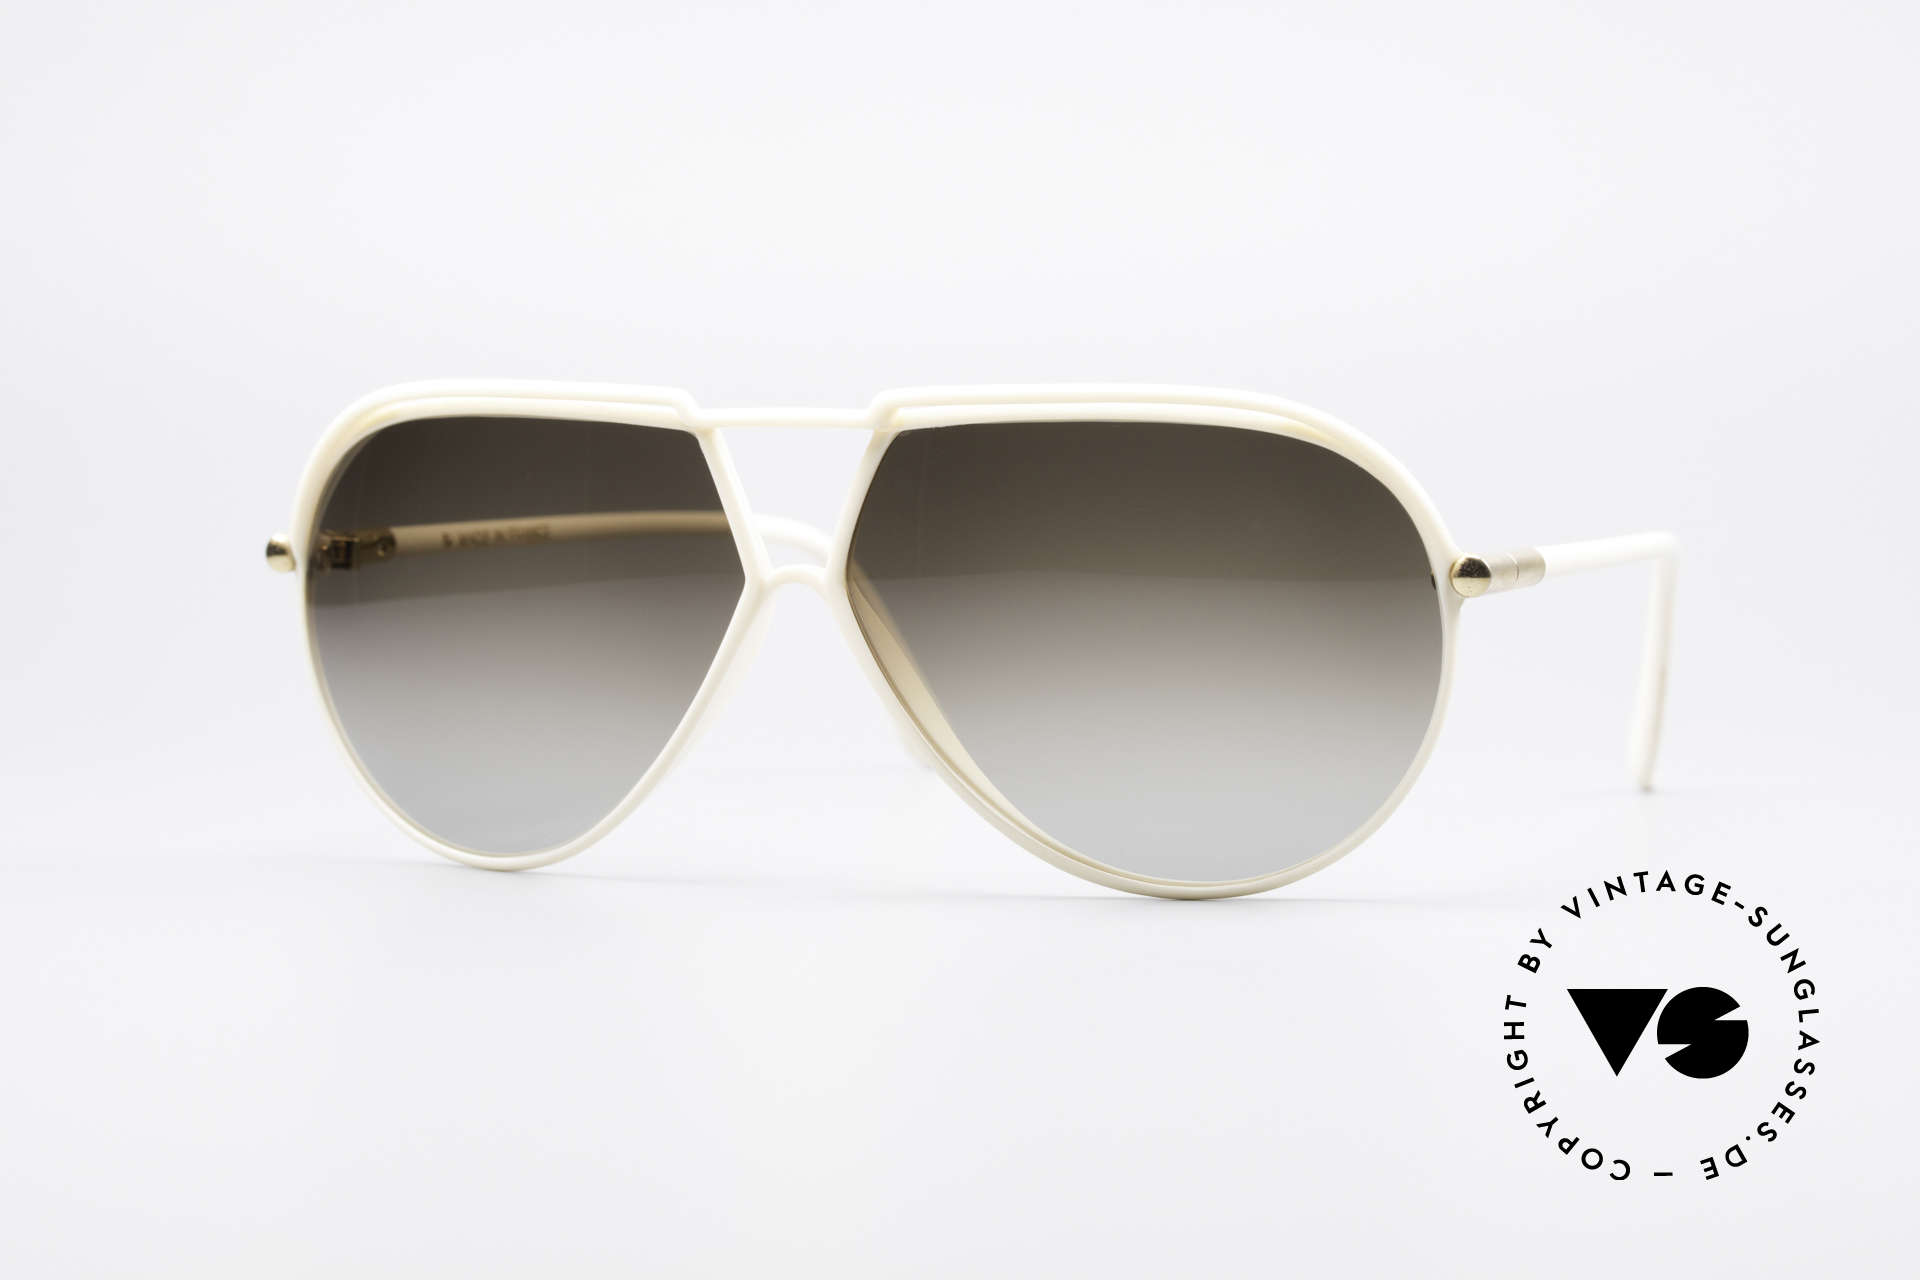 Yves Saint Laurent 8129 Y17 70's Aviator Shades, plain elegance by Yves Saint Laurent from the 1970s, Made for Men and Women